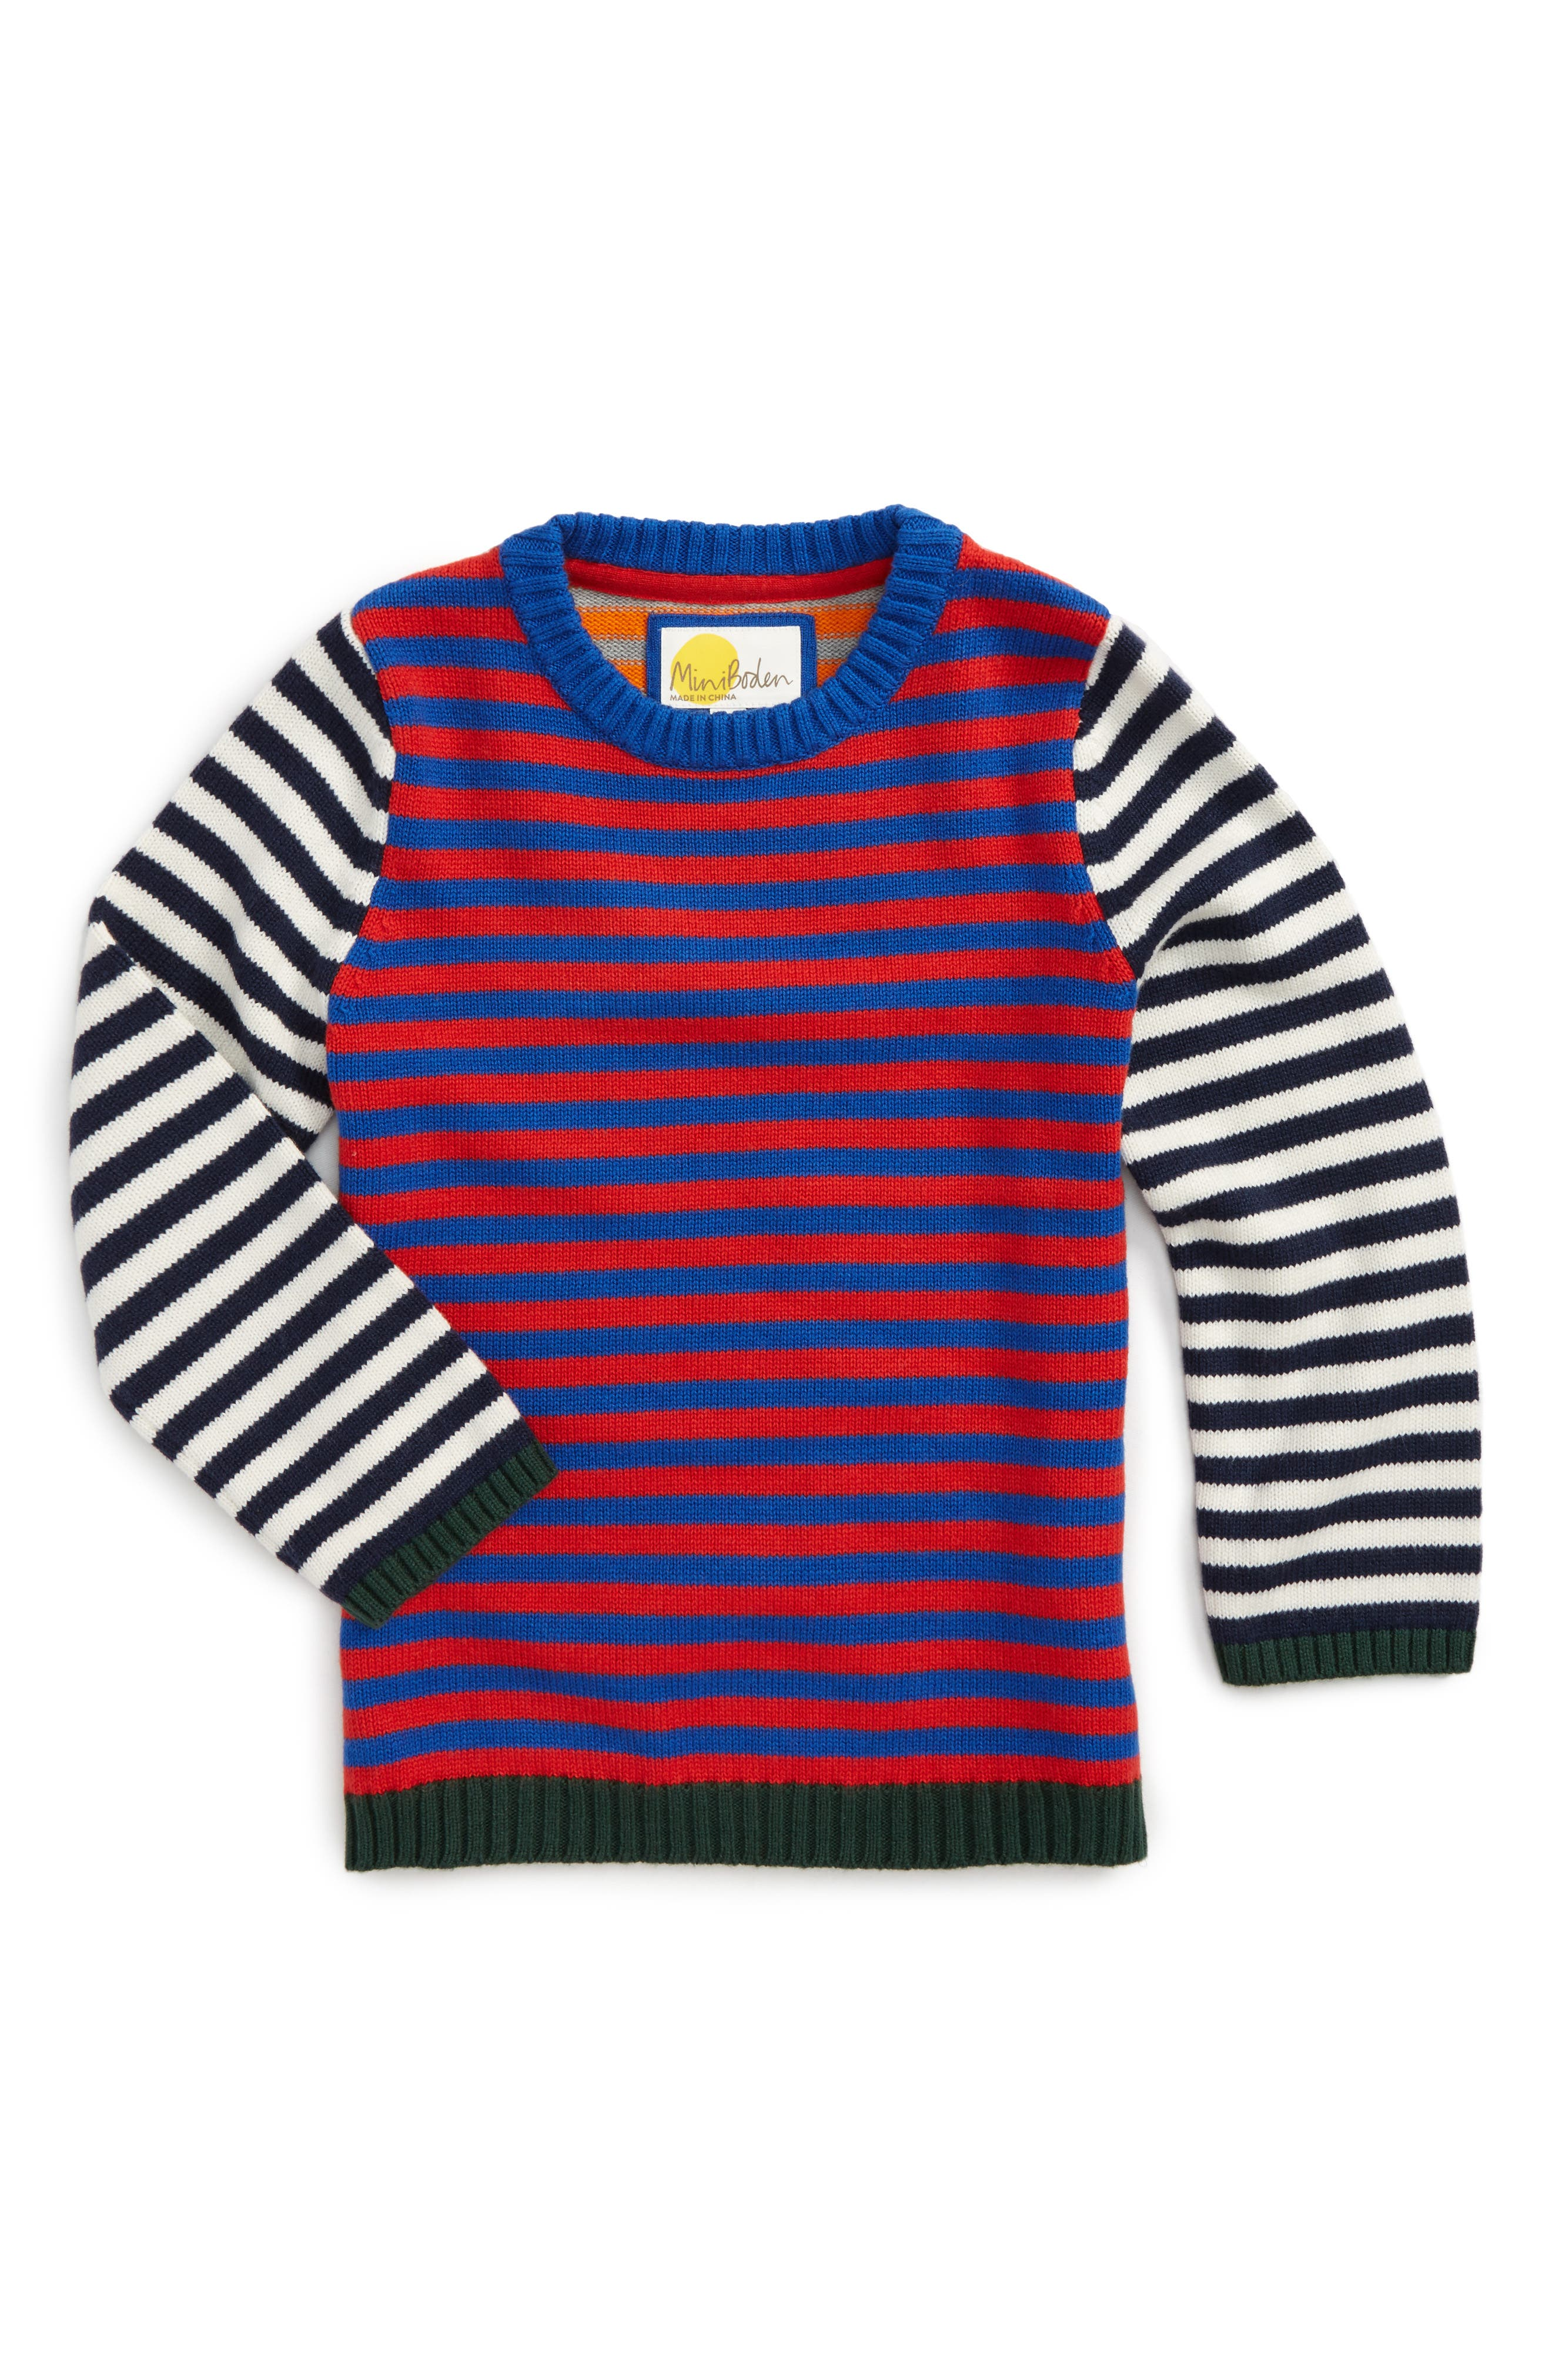 Hotchpotch Sweater,                         Main,                         color, 604